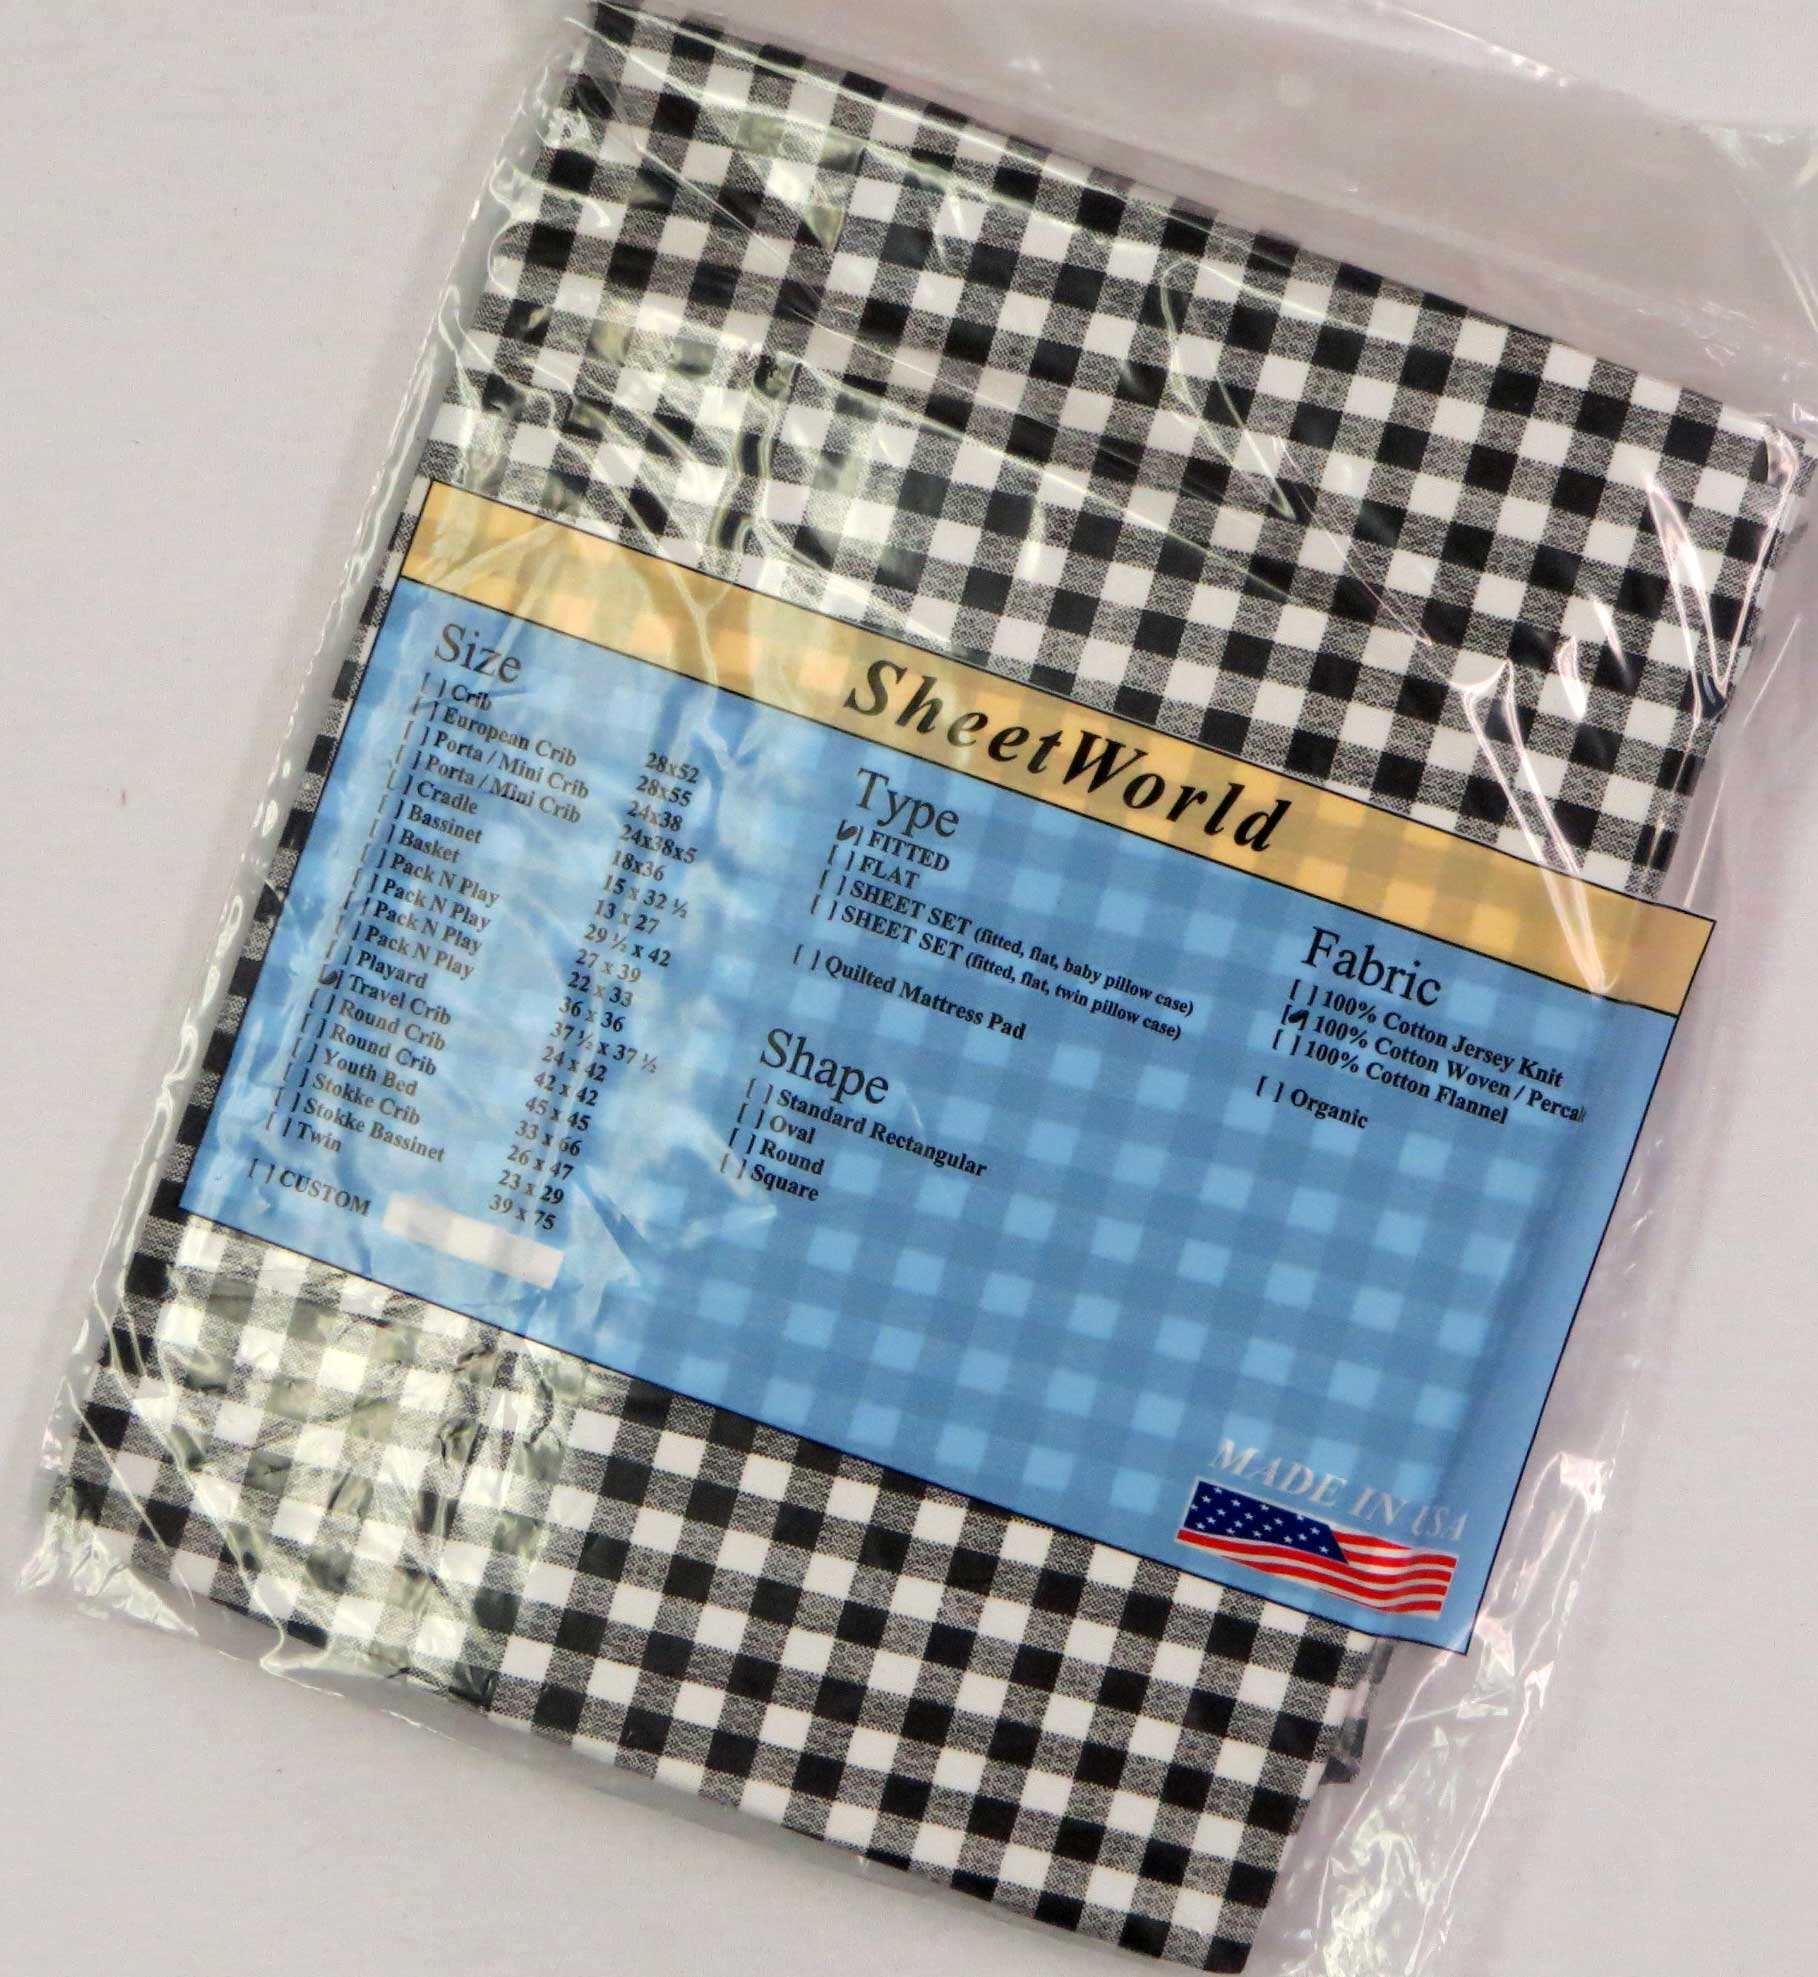 Black White Check Cotton Percale Travel Lite Playard Sheet - Fits BabyBjorn 24 x 42